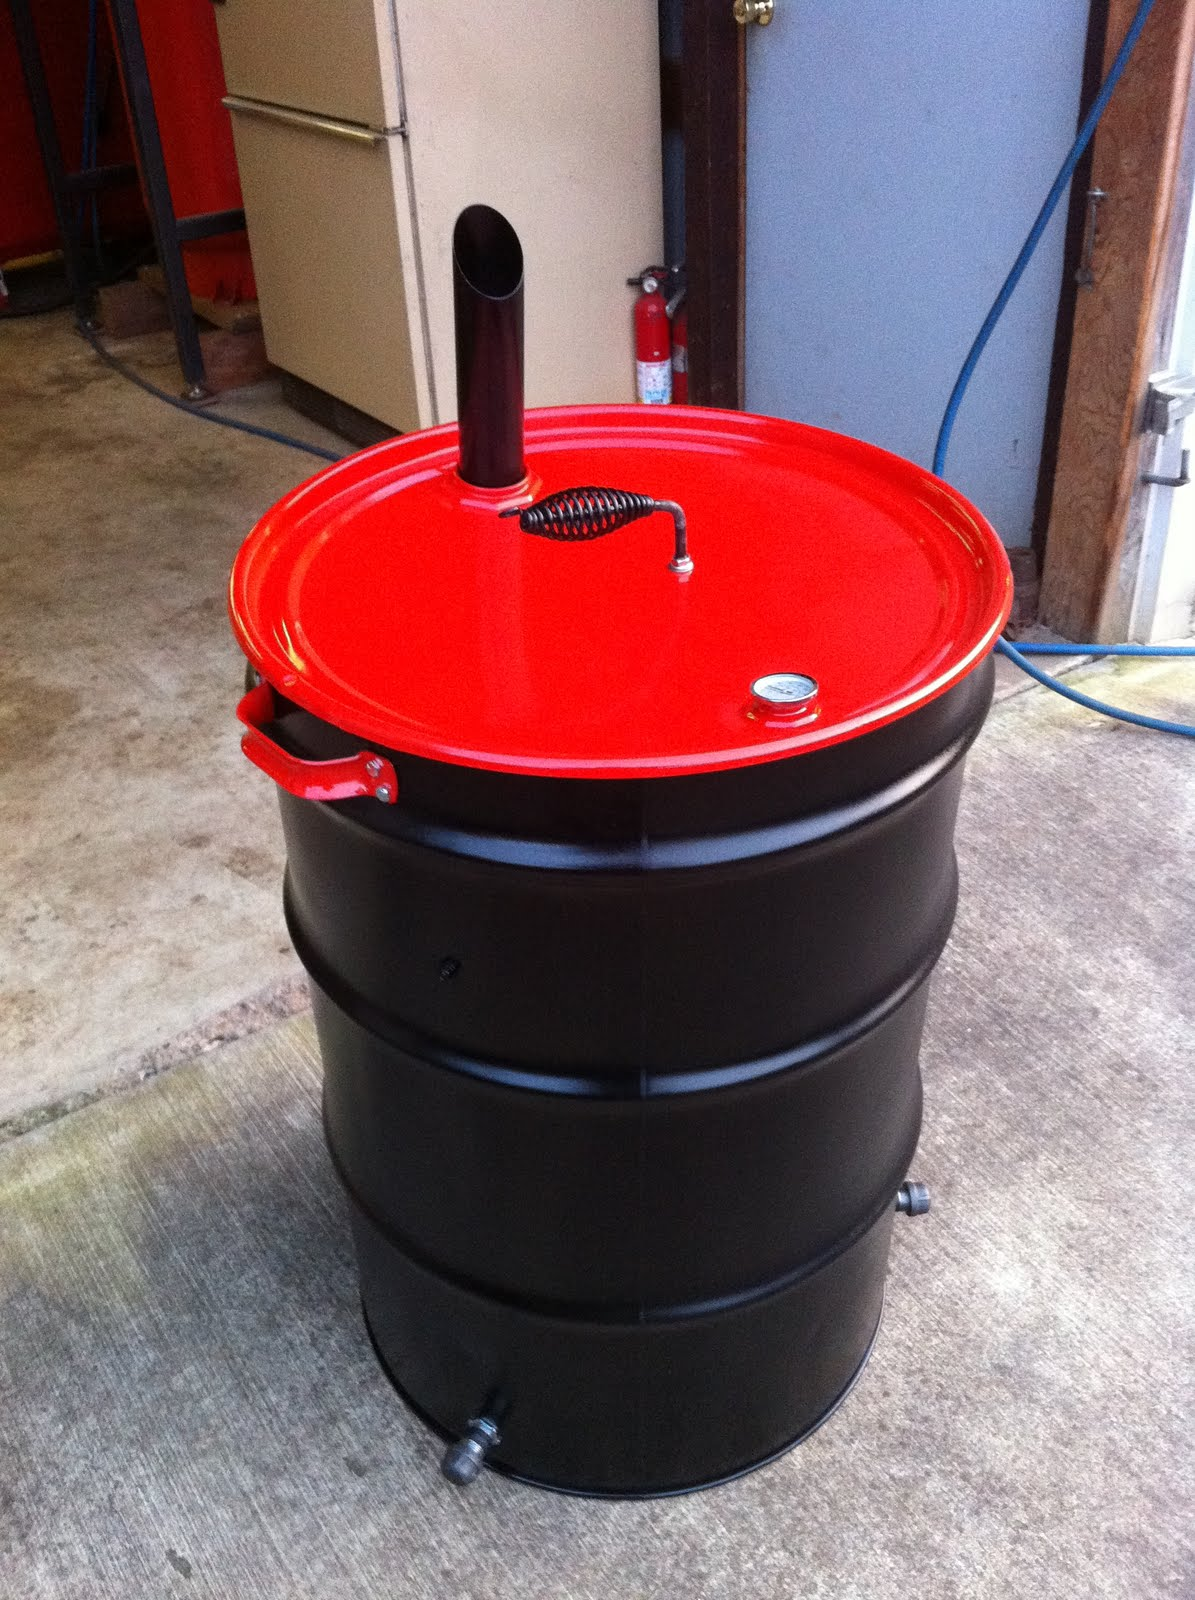 55 Gallon Drum BBQ Grill http://sengook.com/55-gallon-smoker-grill.html